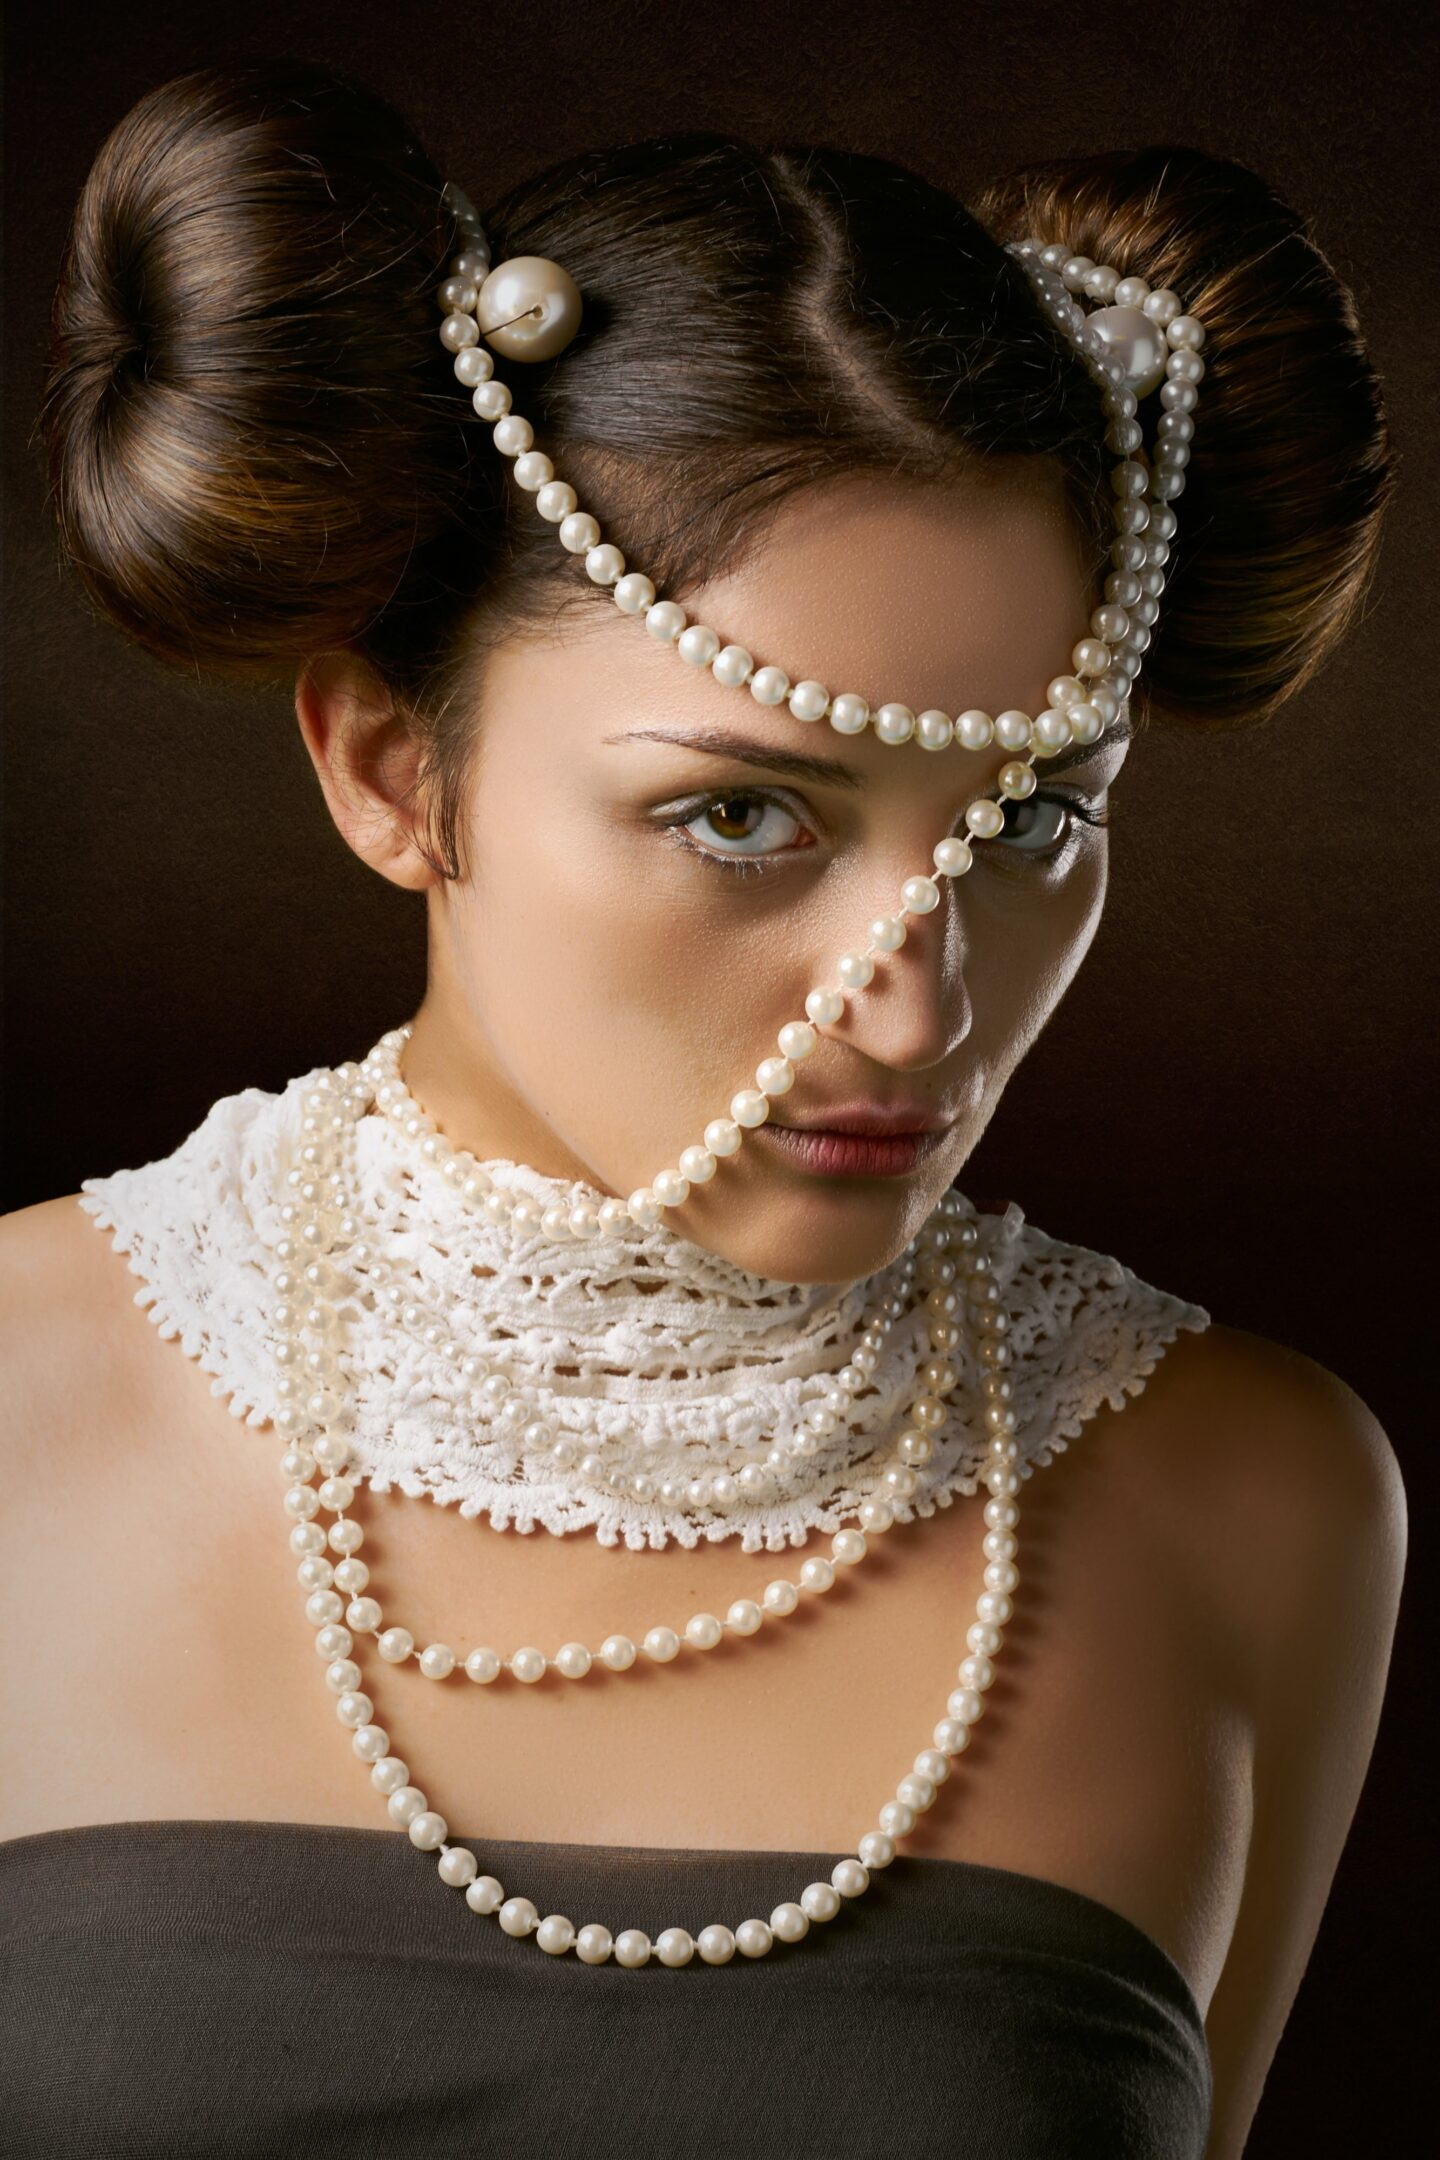 How to Maintain and Take Care of Your Pearls